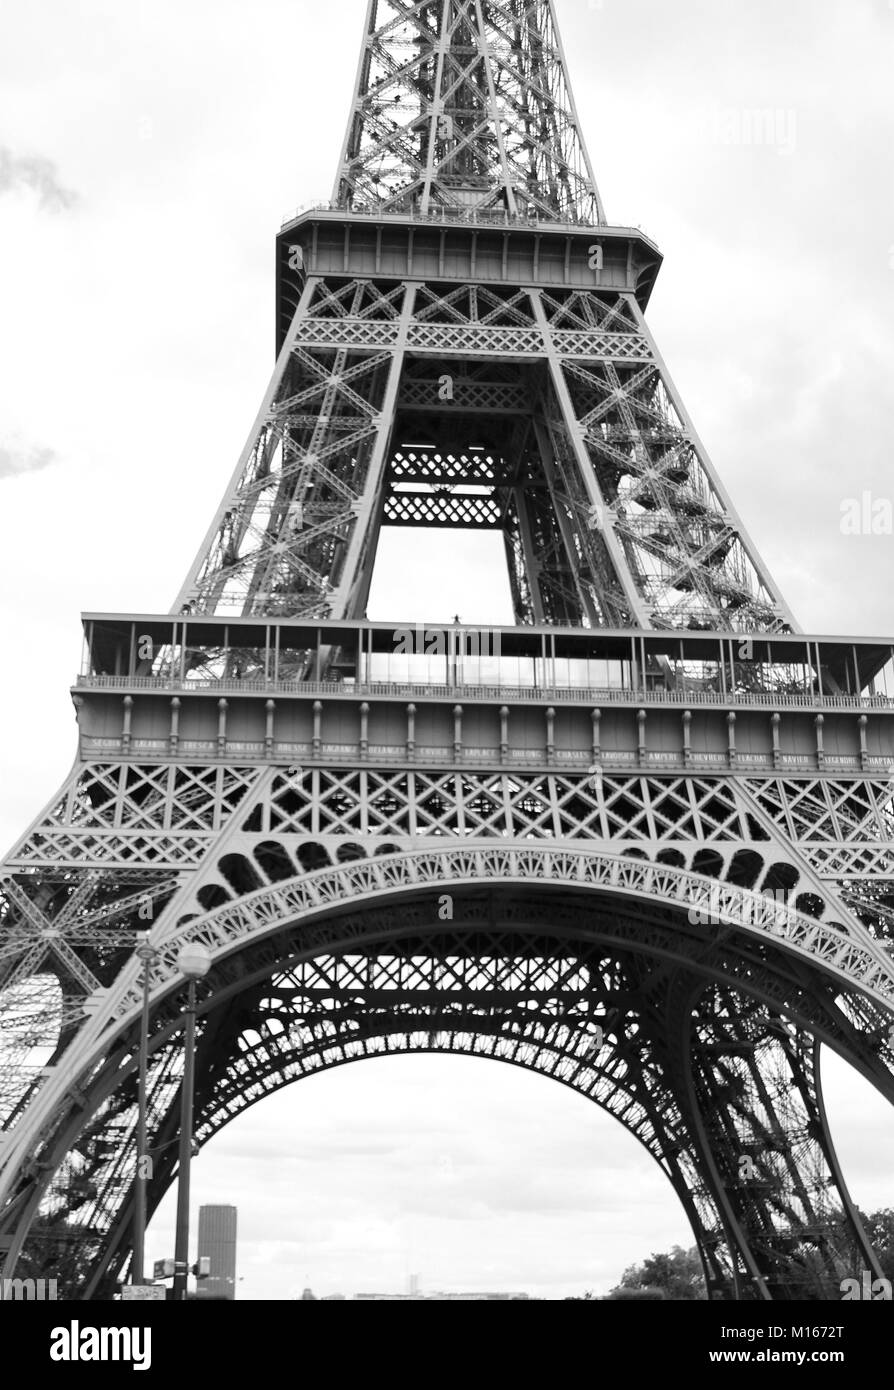 Black And White Close Up Of The Eiffel Tower Paris France Stock Photo Alamy